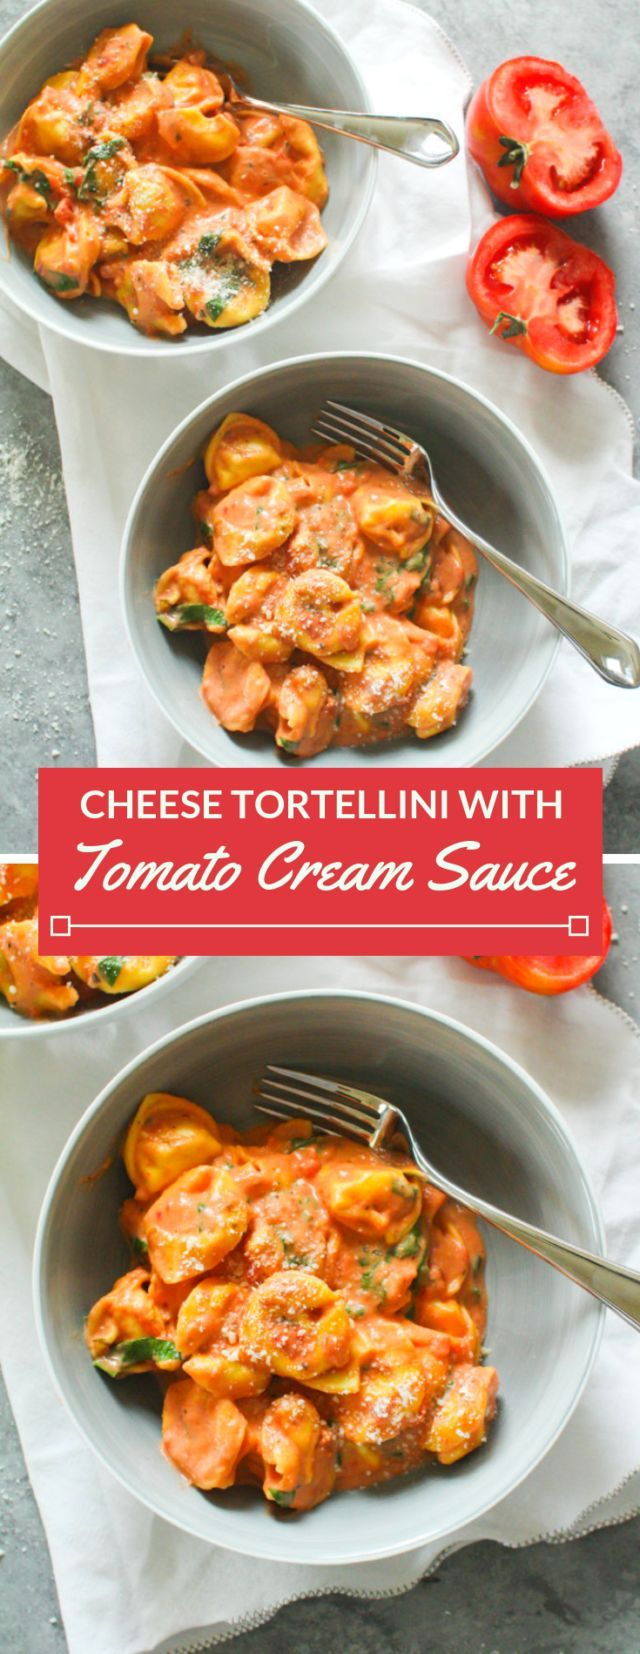 Cheese Tortellini with Tomato Cream Sauce - Zen & Spice